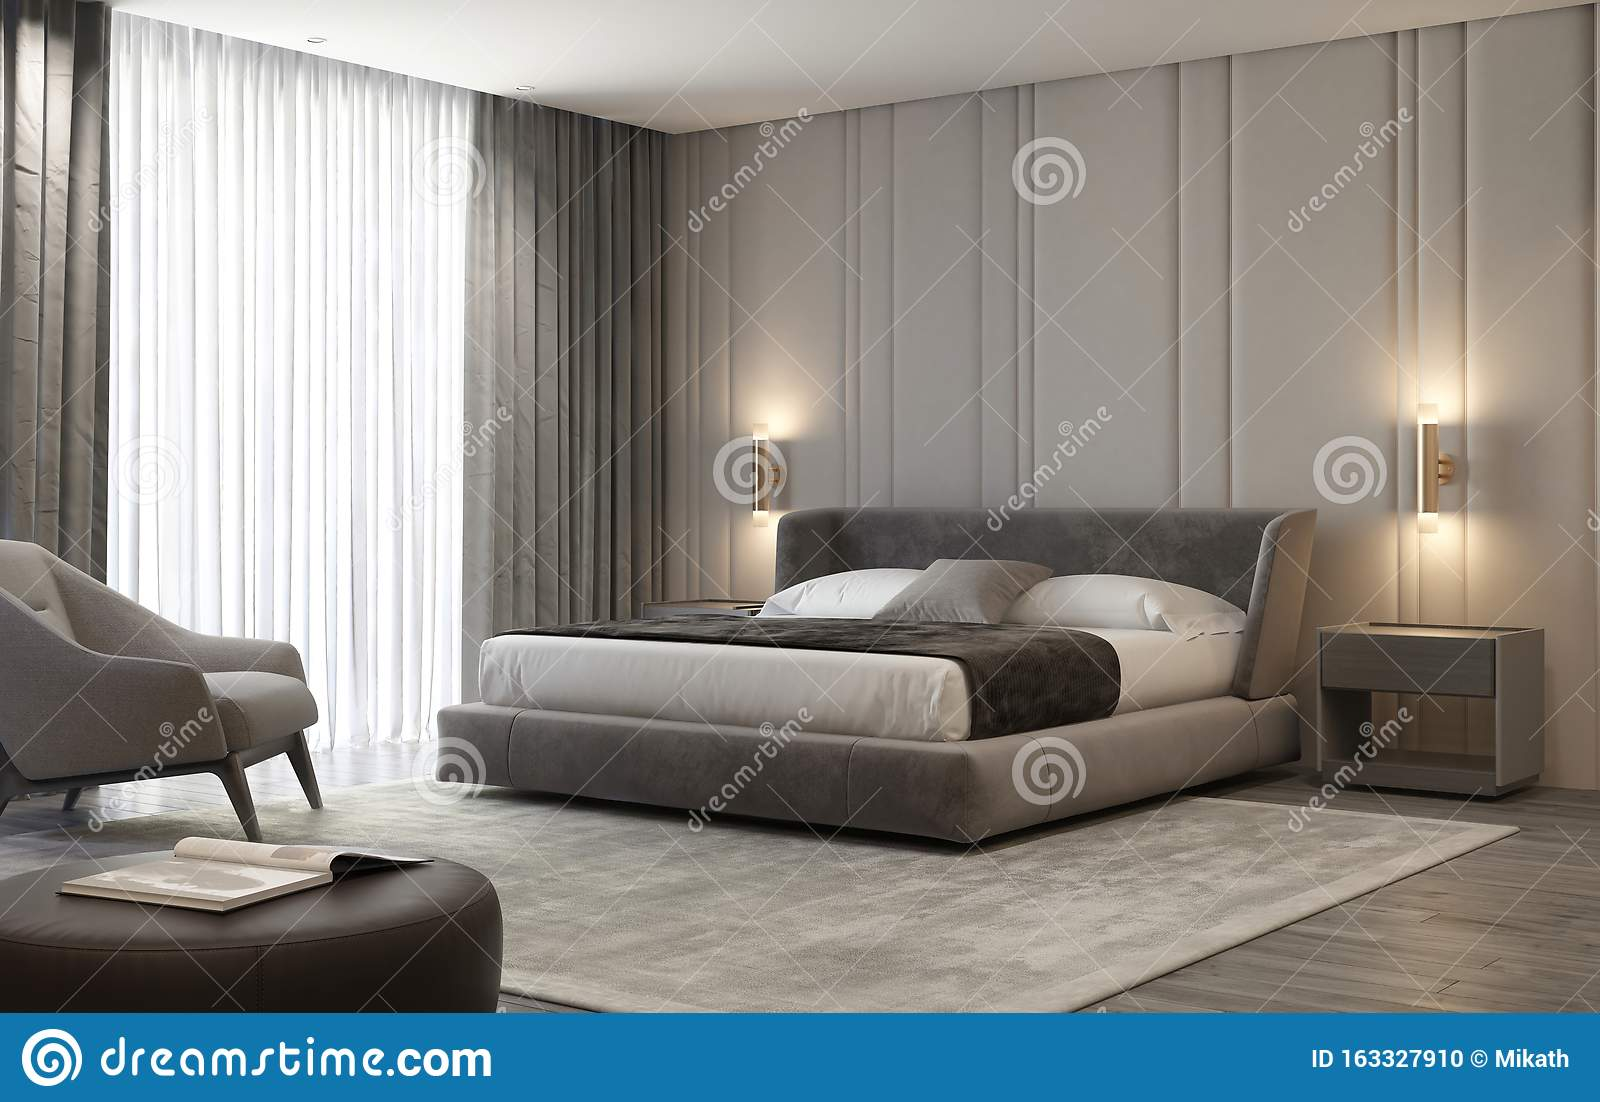 Luxury Beige And Grey Inreior Bedroom With Brass Wall Lamps Stock Photo Image Of Door Frame 163327910